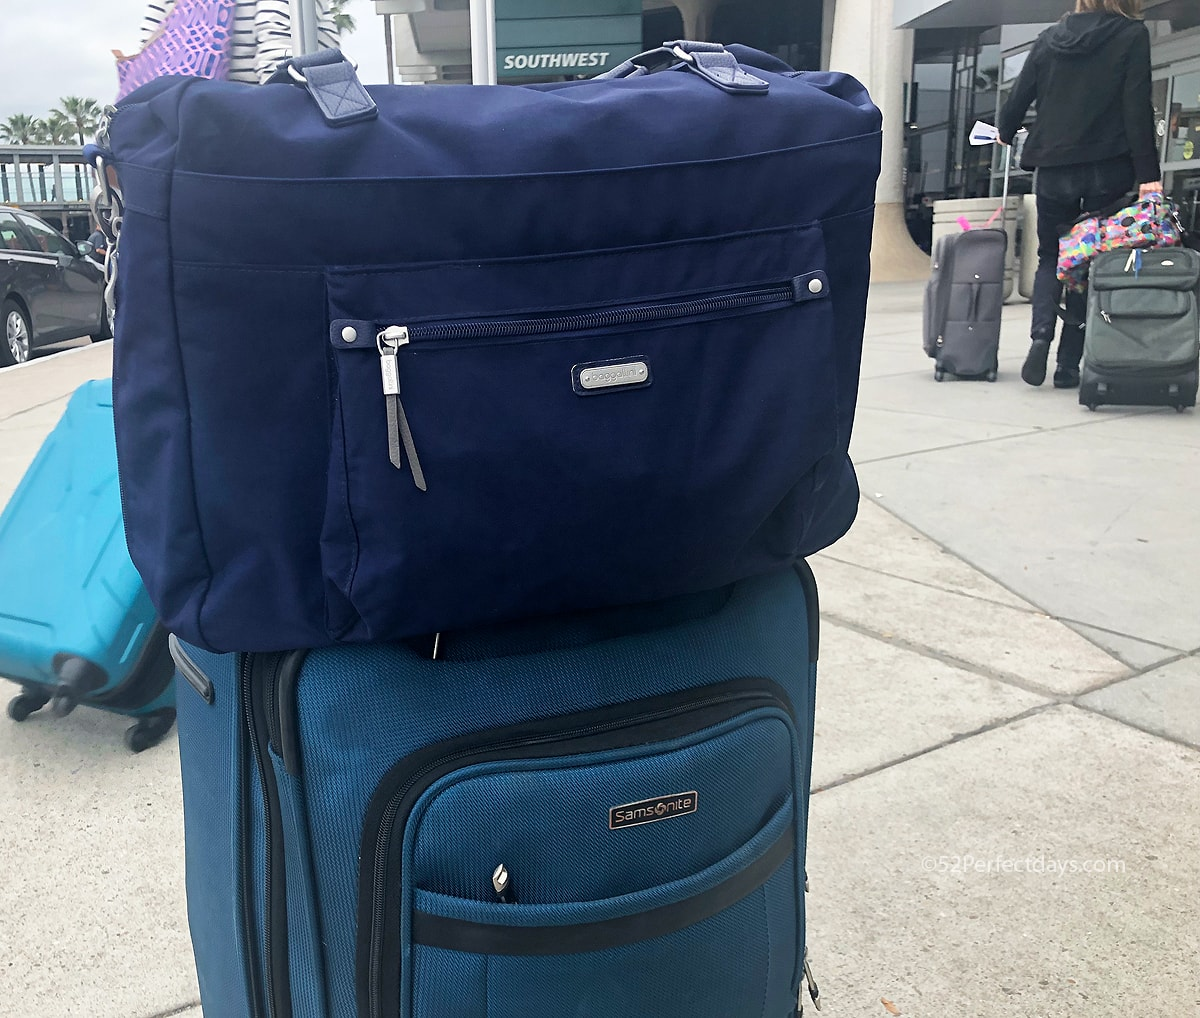 592087c64fb9 How to Pack for 2 Weeks in Europe (in one suitcase) - 52 Perfect Days